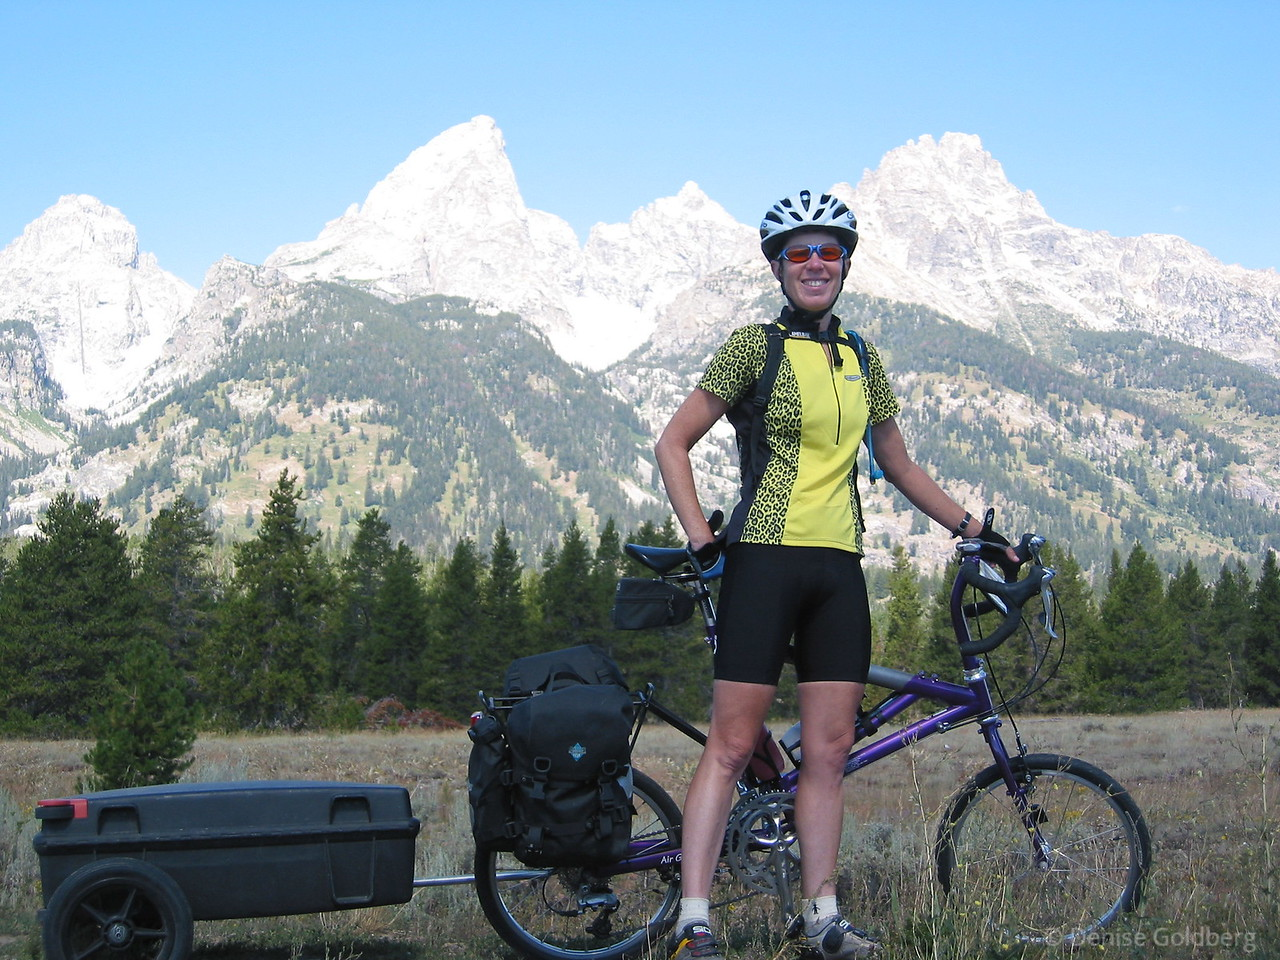 """<big>2002-06: Boston to Oregon, a cross-country celebration</big> <br/><br/> Riding across the United States has been a dream of mine for a while. Why? <br/><br/>People keep asking me why I want to do this trip. It's really a combination of things to me: a chance to explore our country at a pace that lets me really see things, a chance to meet and interact with people who live in the areas I'll be passing through, a chance to meet other cyclists, a chance to see parts of the country that I've only dreamed of so far, and a sense of accomplishment that comes from a ride of this sort.<br/><br/>Please join me in my dream ride from east to west. <br/><br/> Click to visit my <a href=""""http://denisegoldberg2002xc.blogspot.com/""""><b>journal</b></a> or <a href=""""/Travel/Across-the-United-States-by""""><b>photo galleries</b></a>."""